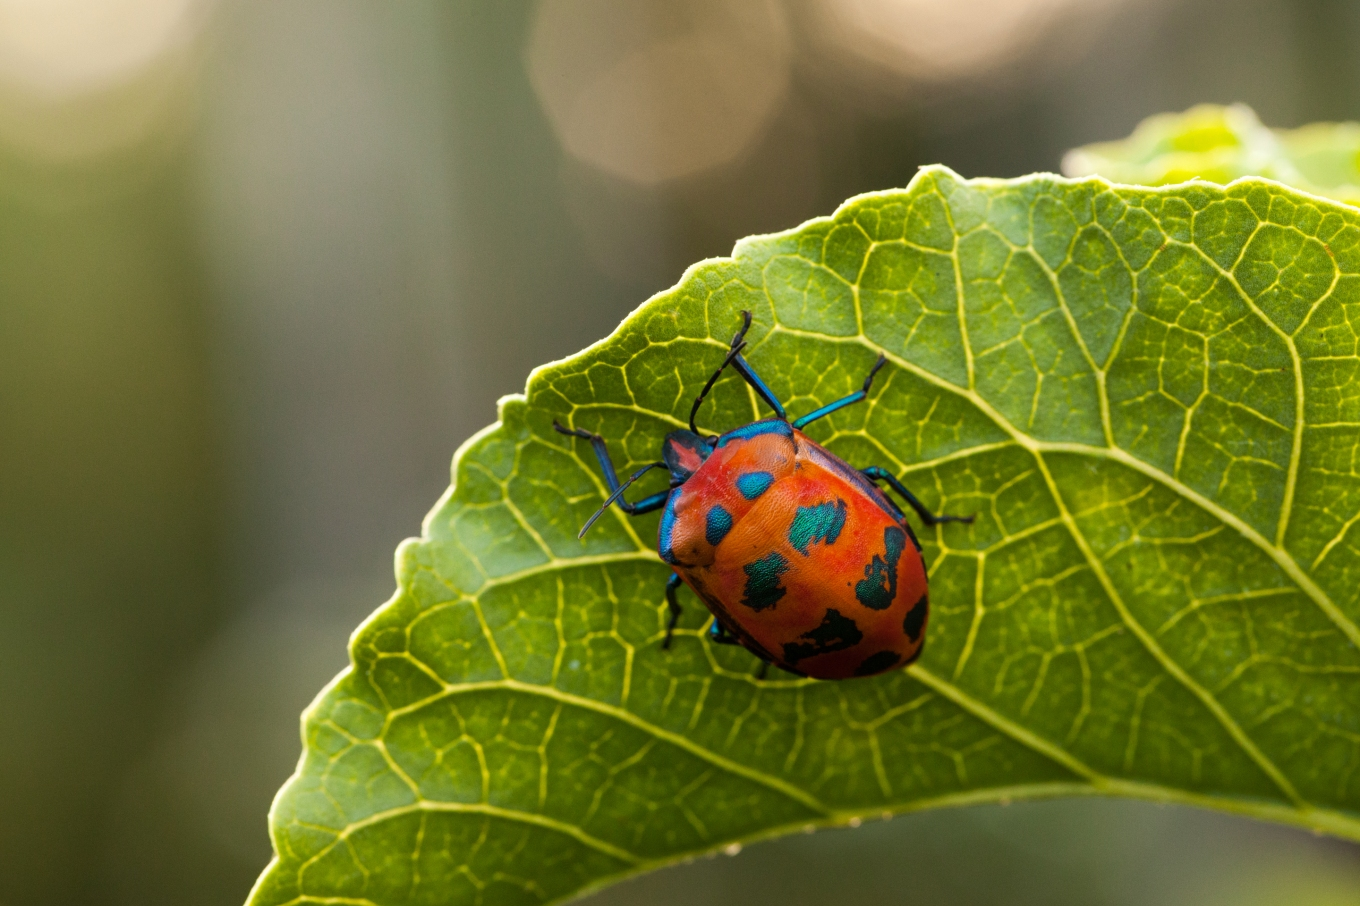 Tectocoris diophthalmus (Cotton Harlequin Bug) Photo: Sam Collins http://goo.gl/LvVOZ6